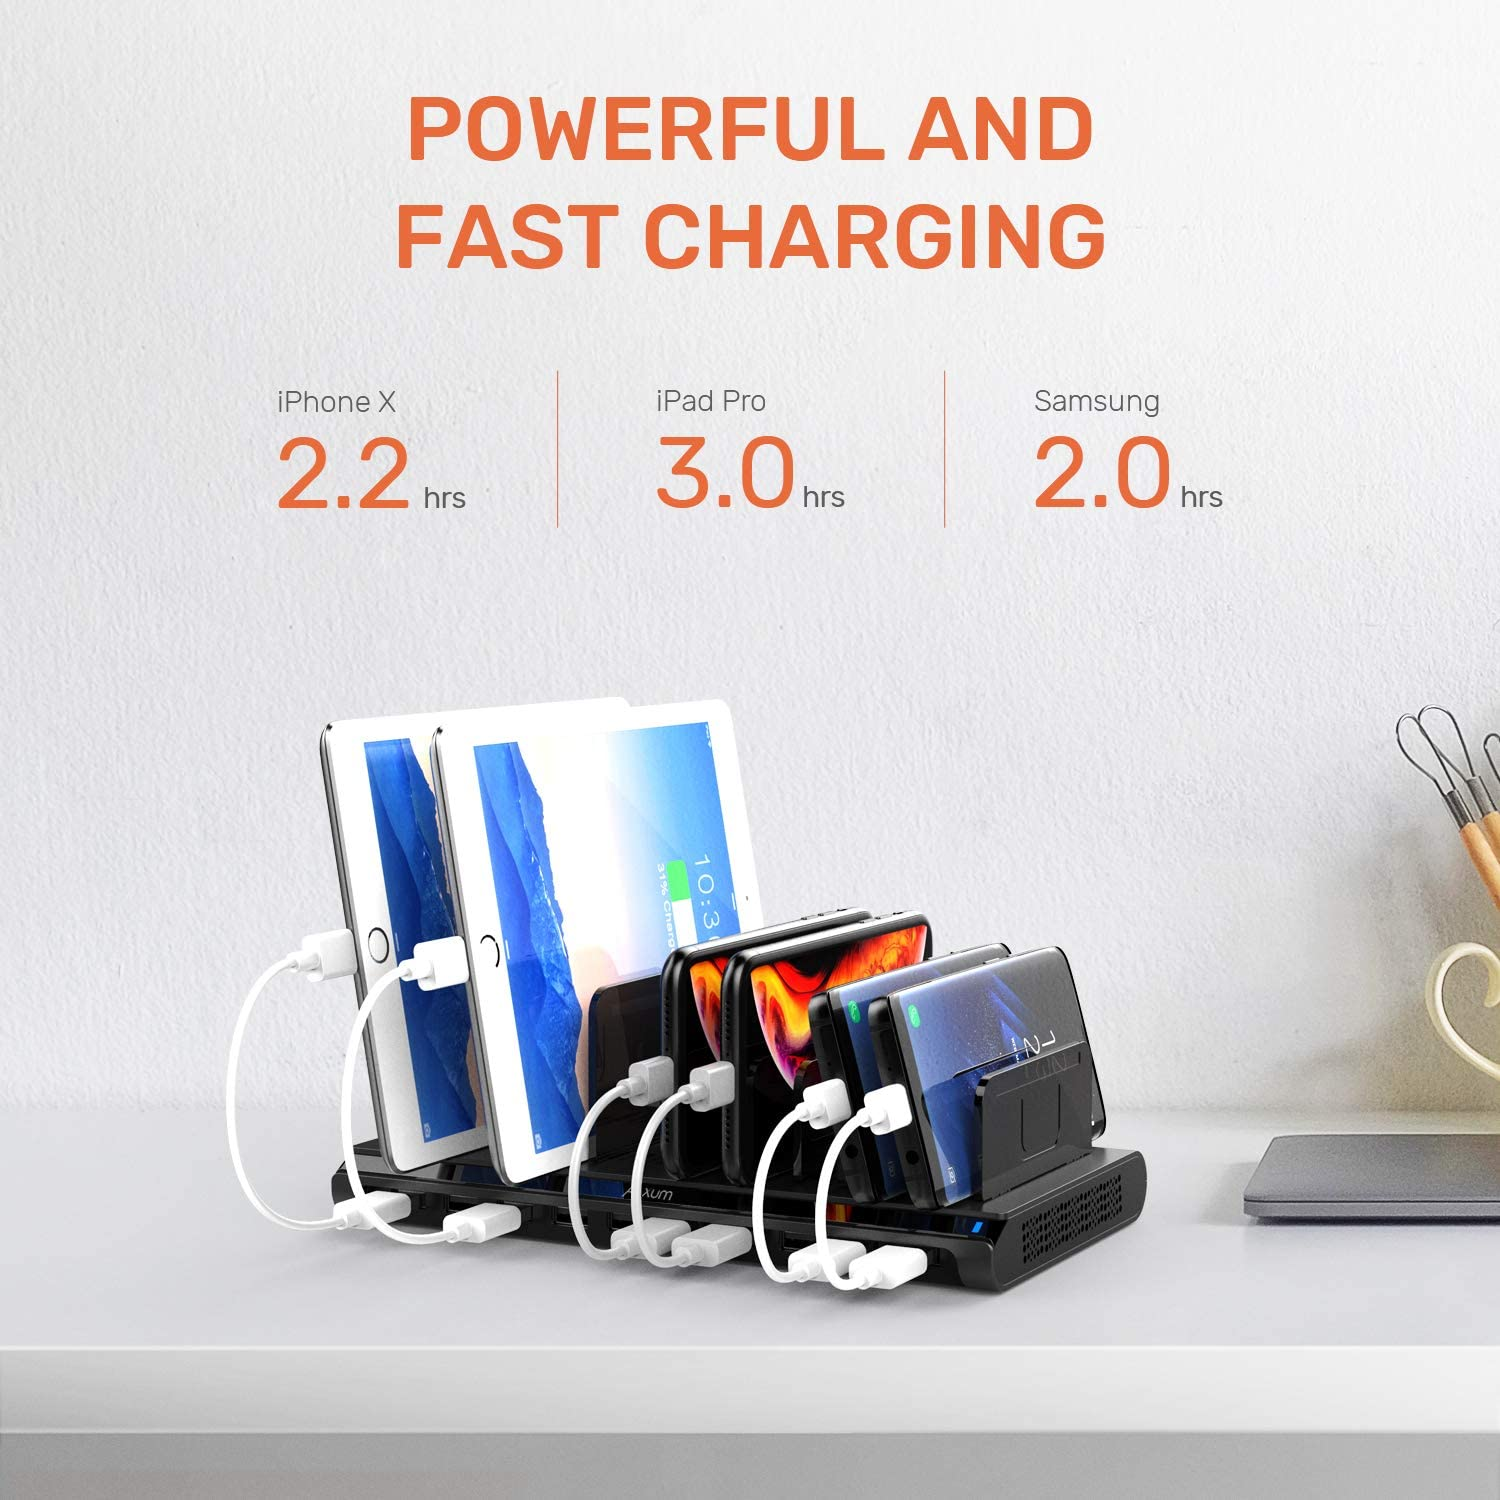 Compatible with iPhone 10-Port USB Charging Station Samsung Galaxy Alxum iPad Charging Station for Multiple Device with Adjustable Dividers Black Google Pixel LG stylo Kindle iPad Air//Mini